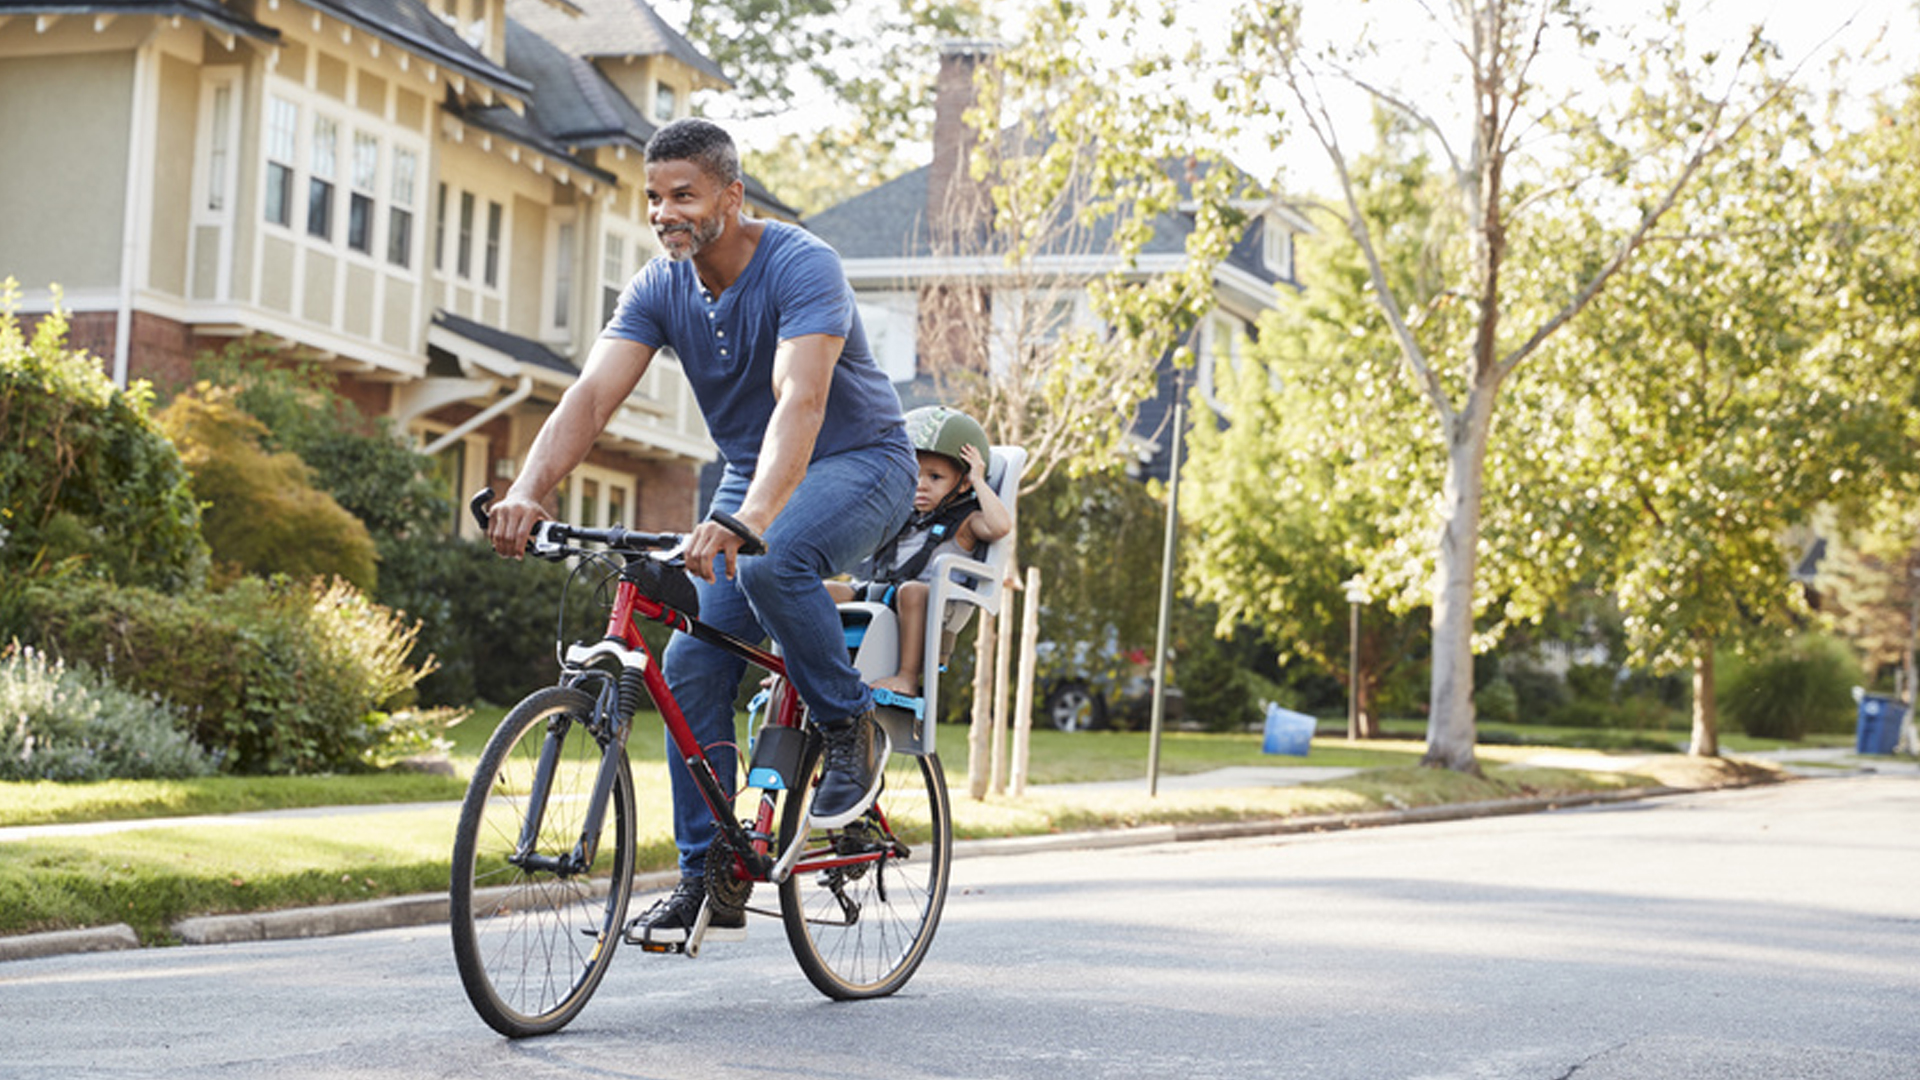 BEST SUBURBS FOR THE OUTDOORSY HOMEOWNER